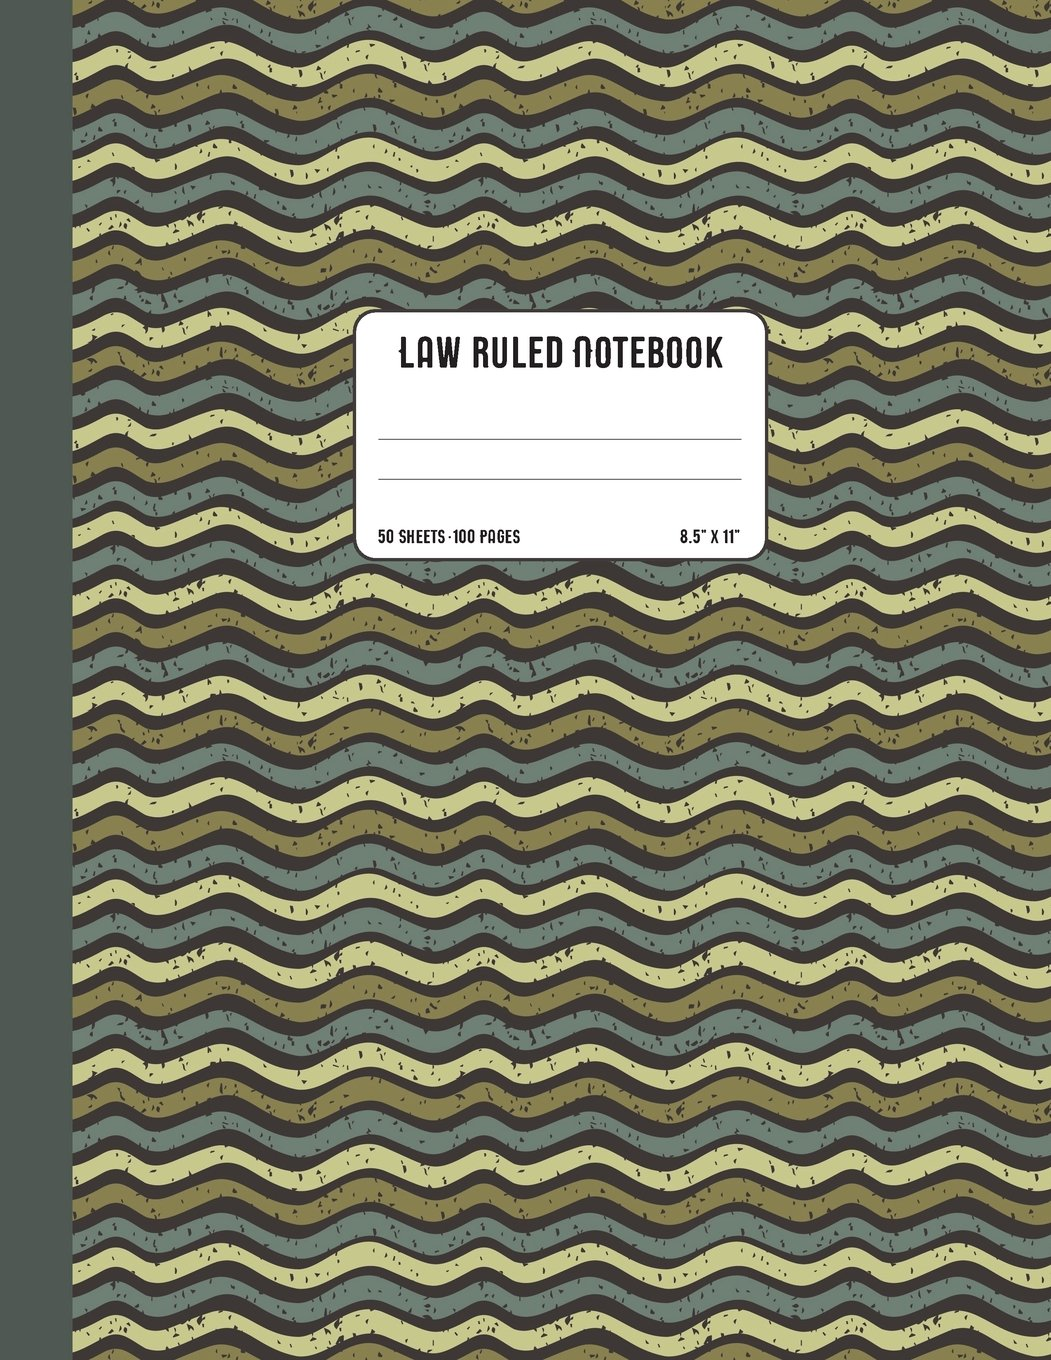 """Download Law Ruled Notebook: College Ruled Composition Book with Wide Margin (3"""" from the left edge of the paper) Soft Cover Letter Size 8.5"""" x 11"""" (21.59 x 27.94 cm) 50 Sheets/100 Pages for Taking Notes PDF"""